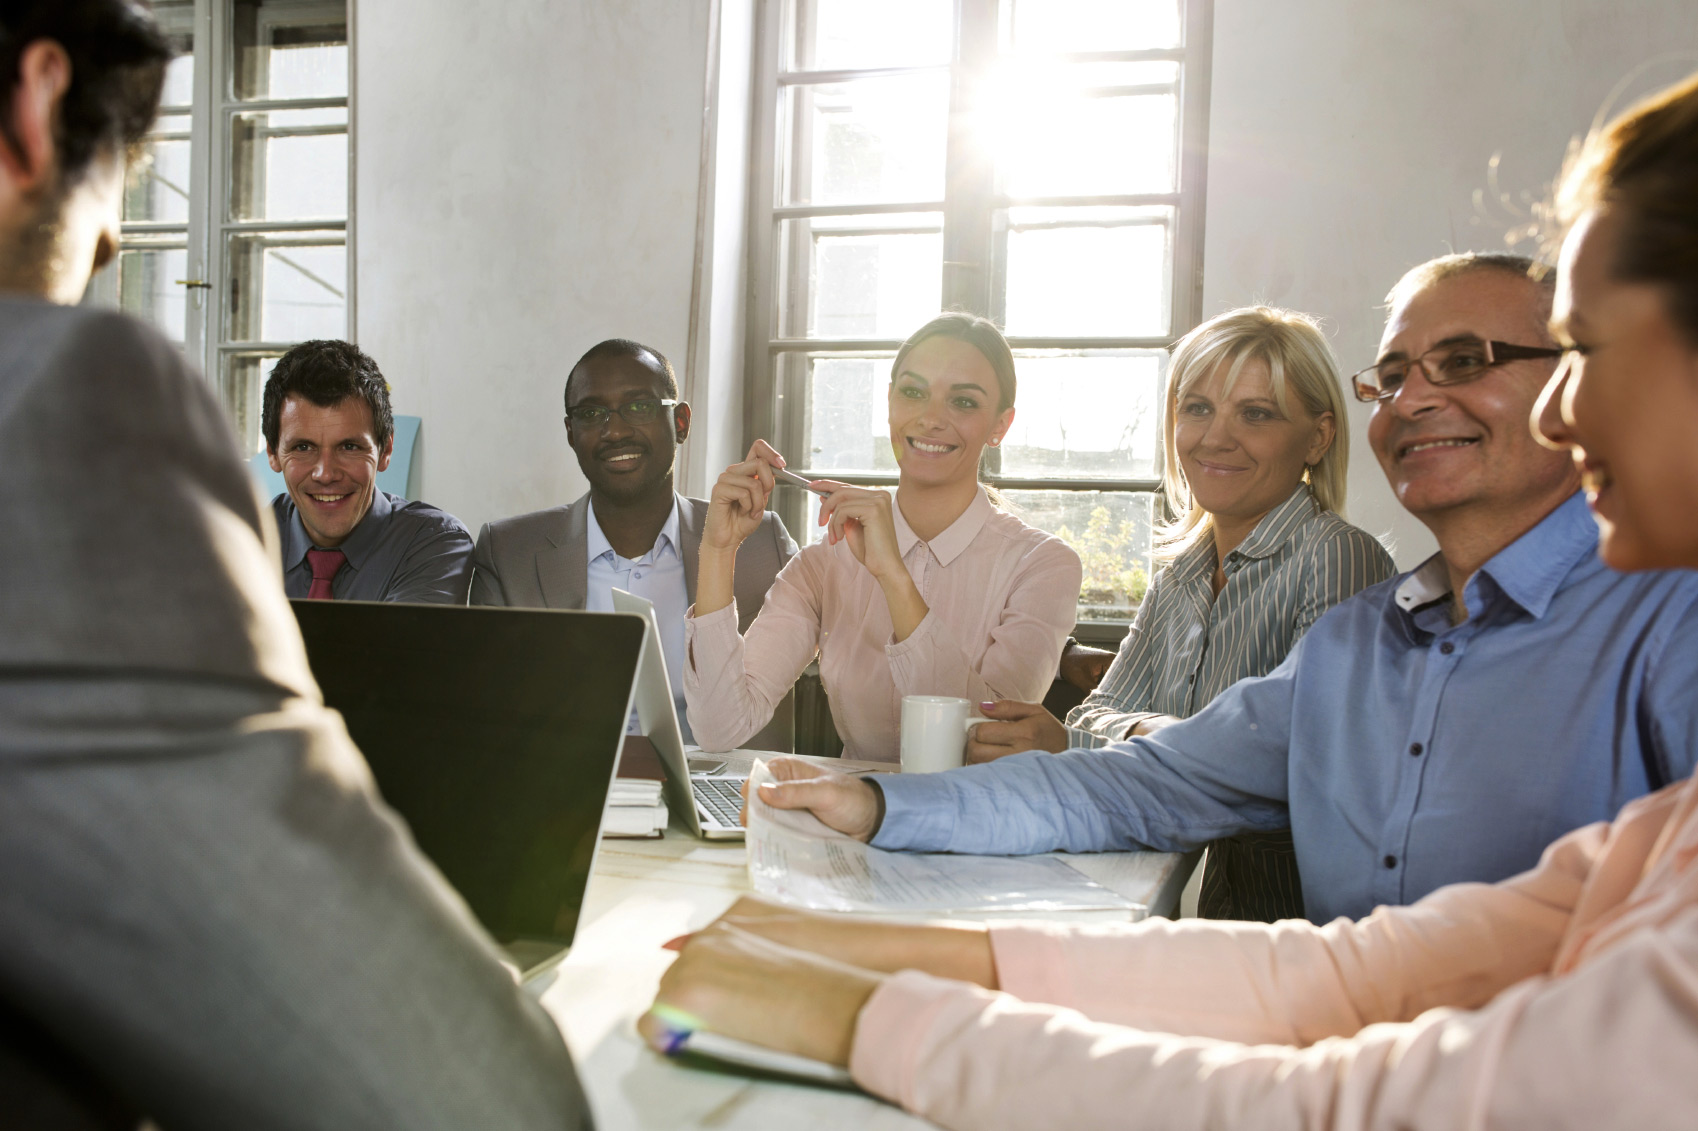 Creating an Engaged Workforce: A Manager's Face-to-Face Toolkit By Roger D'Aprix